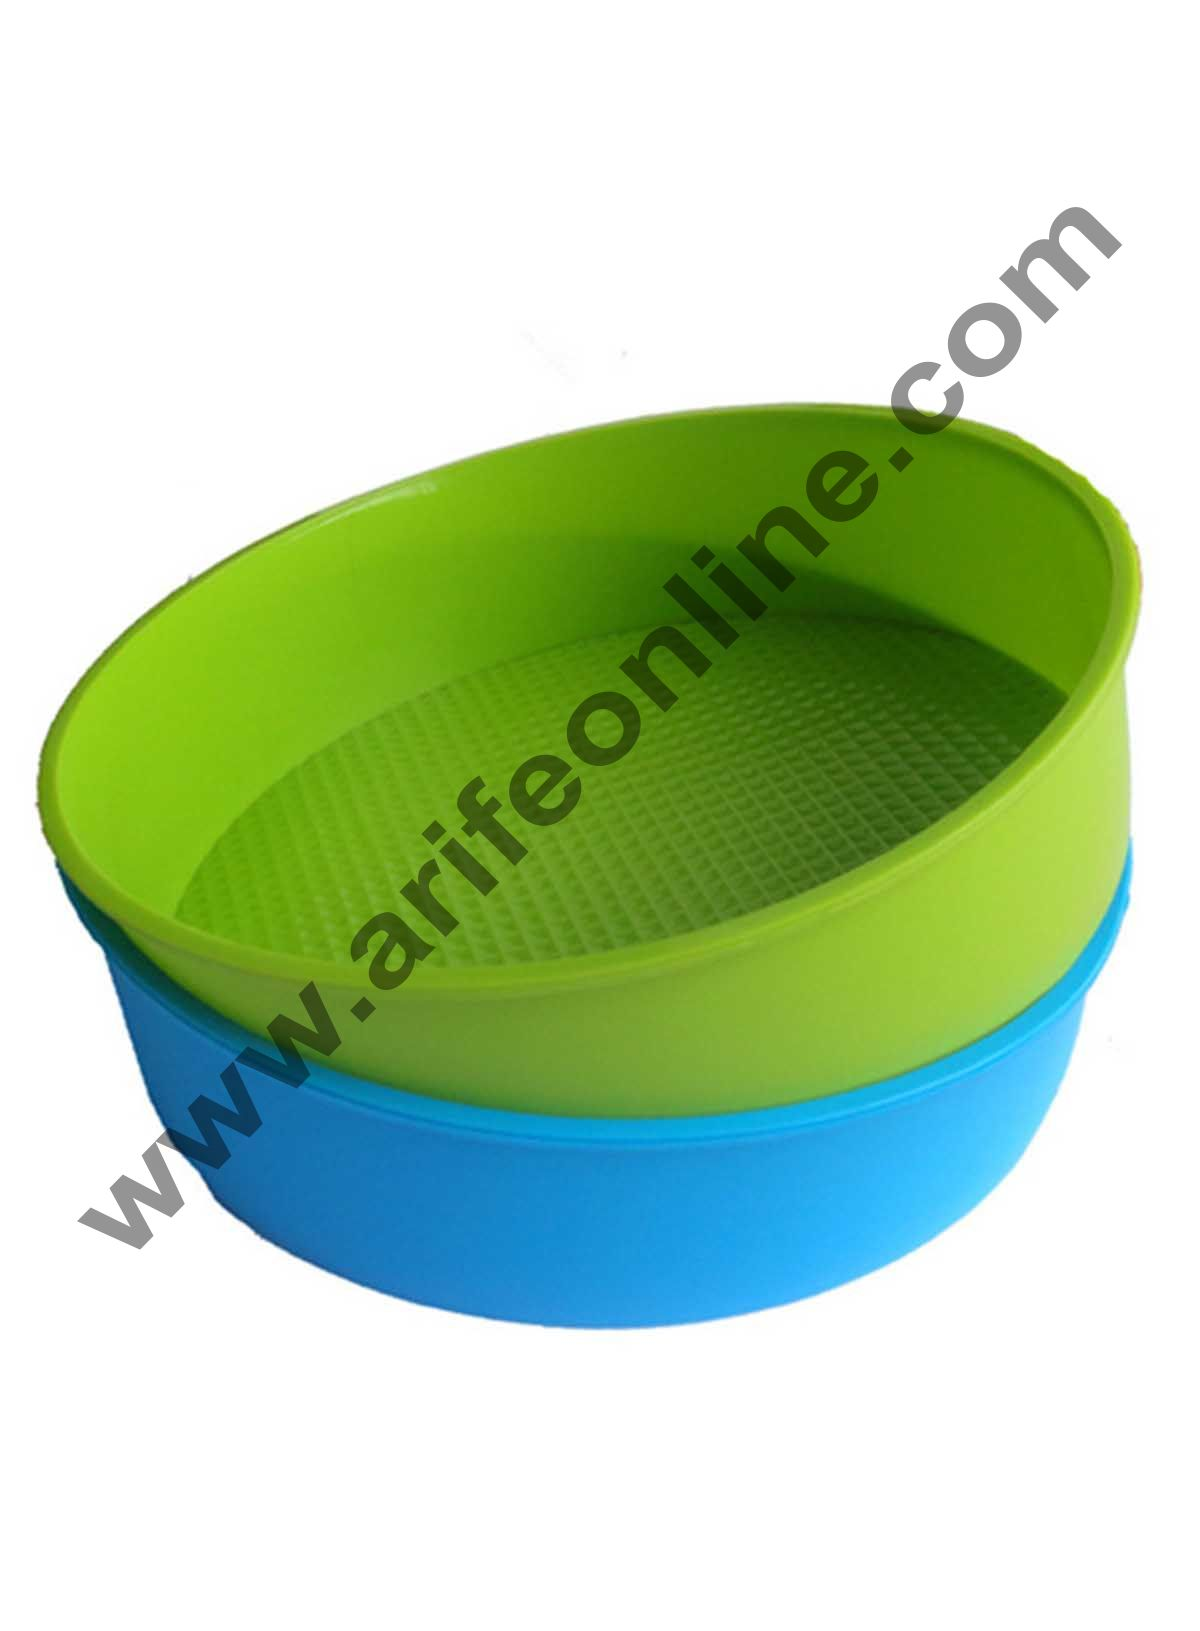 Cake Decor Silicon Bakeware Round Shape Cake Mould